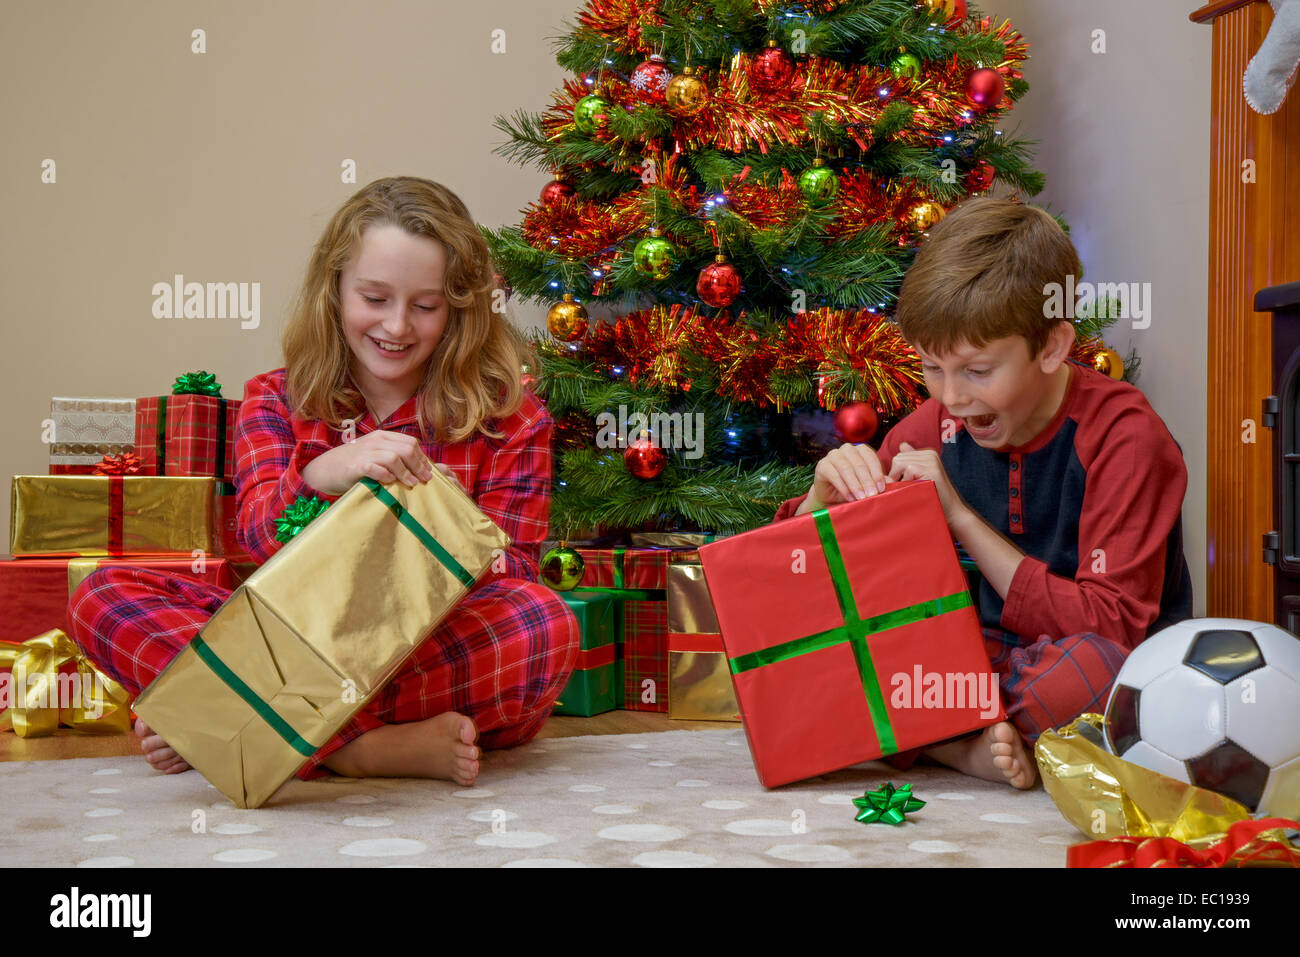 Two children, a boy and a girl, opening their presents on Christmas morning. - Stock Image